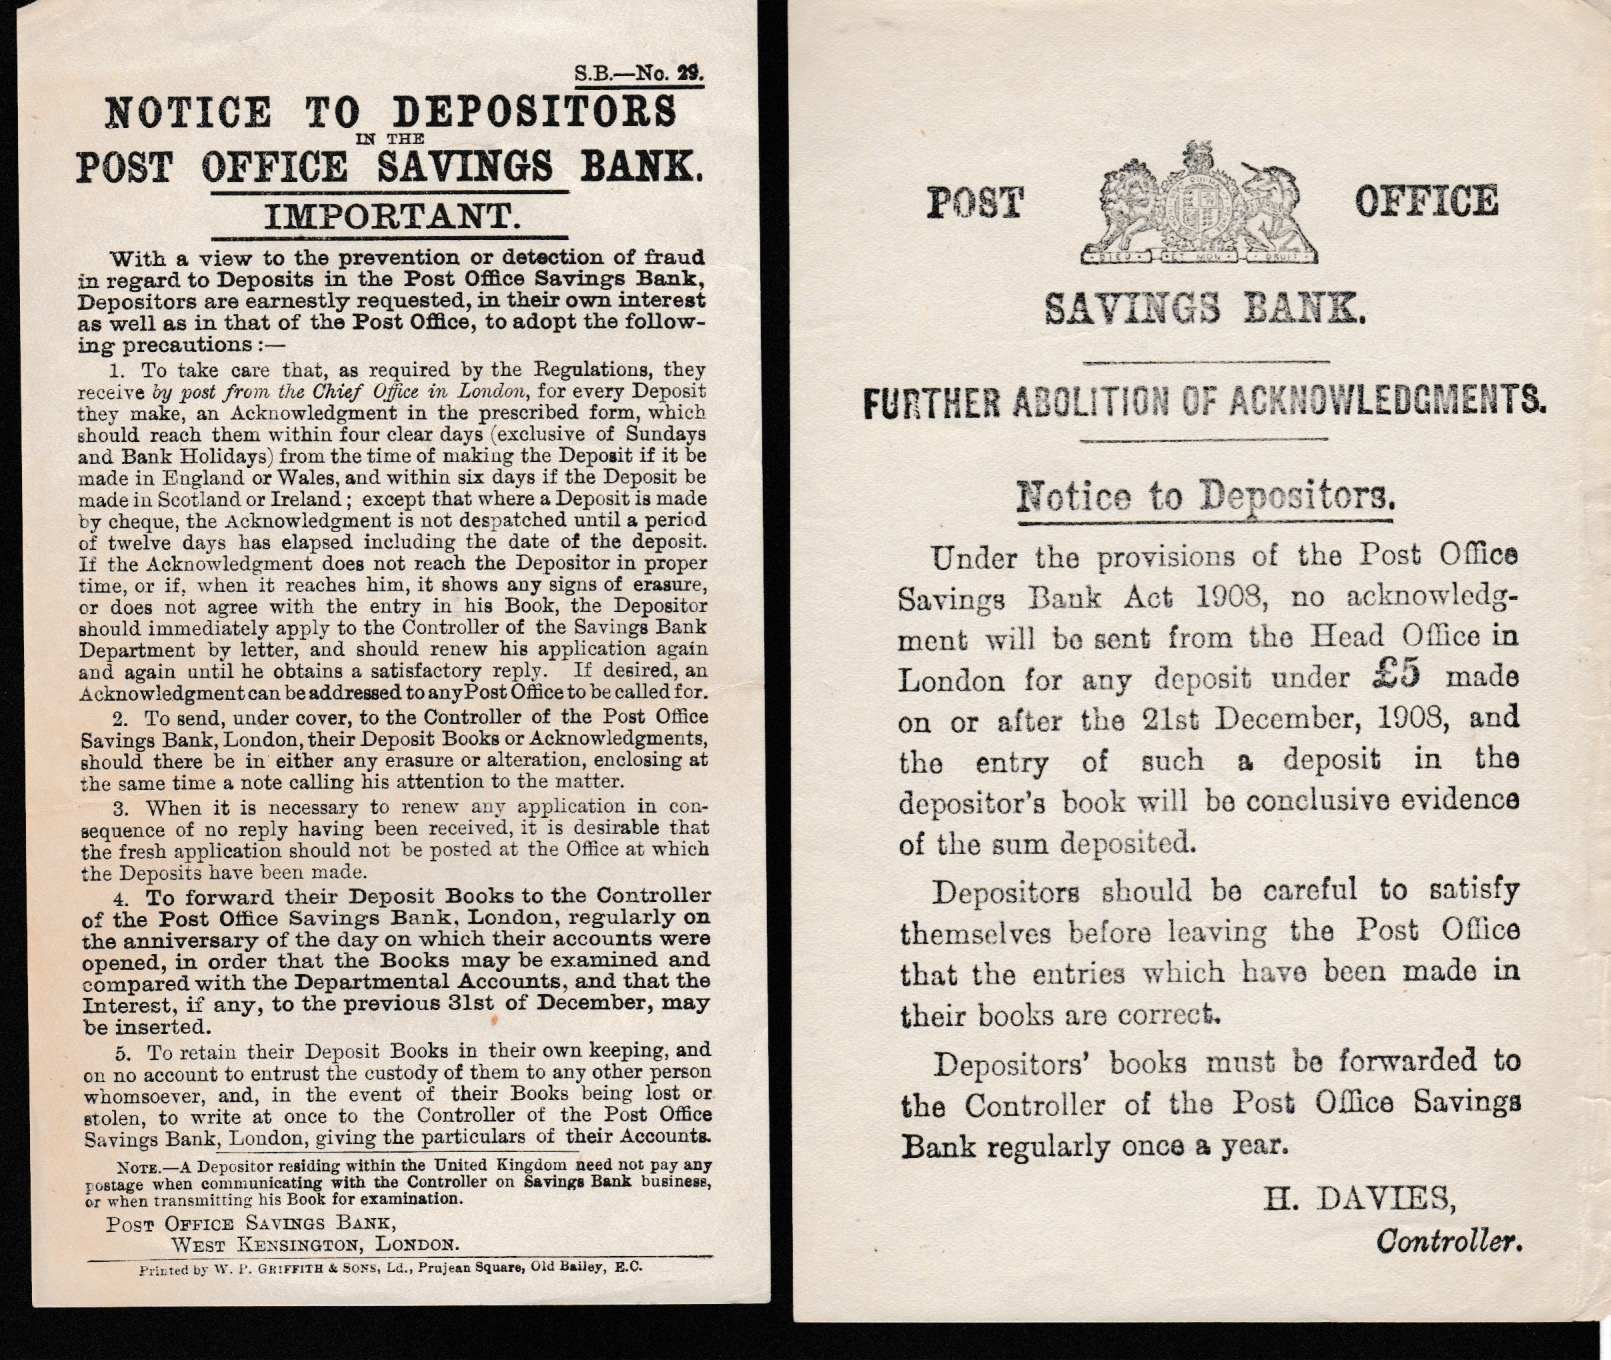 G.B. - Acts & Notices - Image 2 of 6